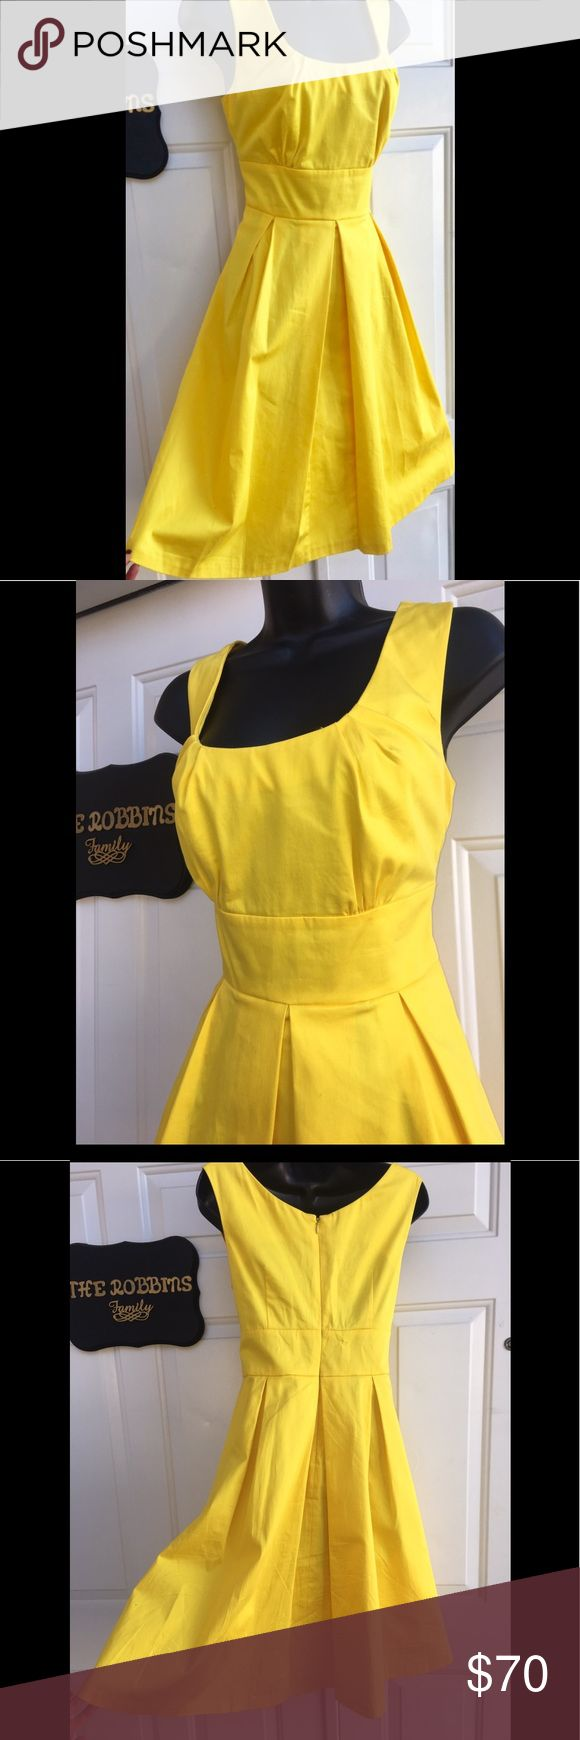 Calvin Klein Yellow Fit n Flare Party Dress 4 Calvin Klein. Yellow Fit and Flare Fully Lined Party Dress. Scoop neck fitted bodice with a full Pleated skirt that poofs out. Fun and Flirty in this adorable bright yellow. Figure flattering. Brand New. Size 4 Calvin Klein Dresses